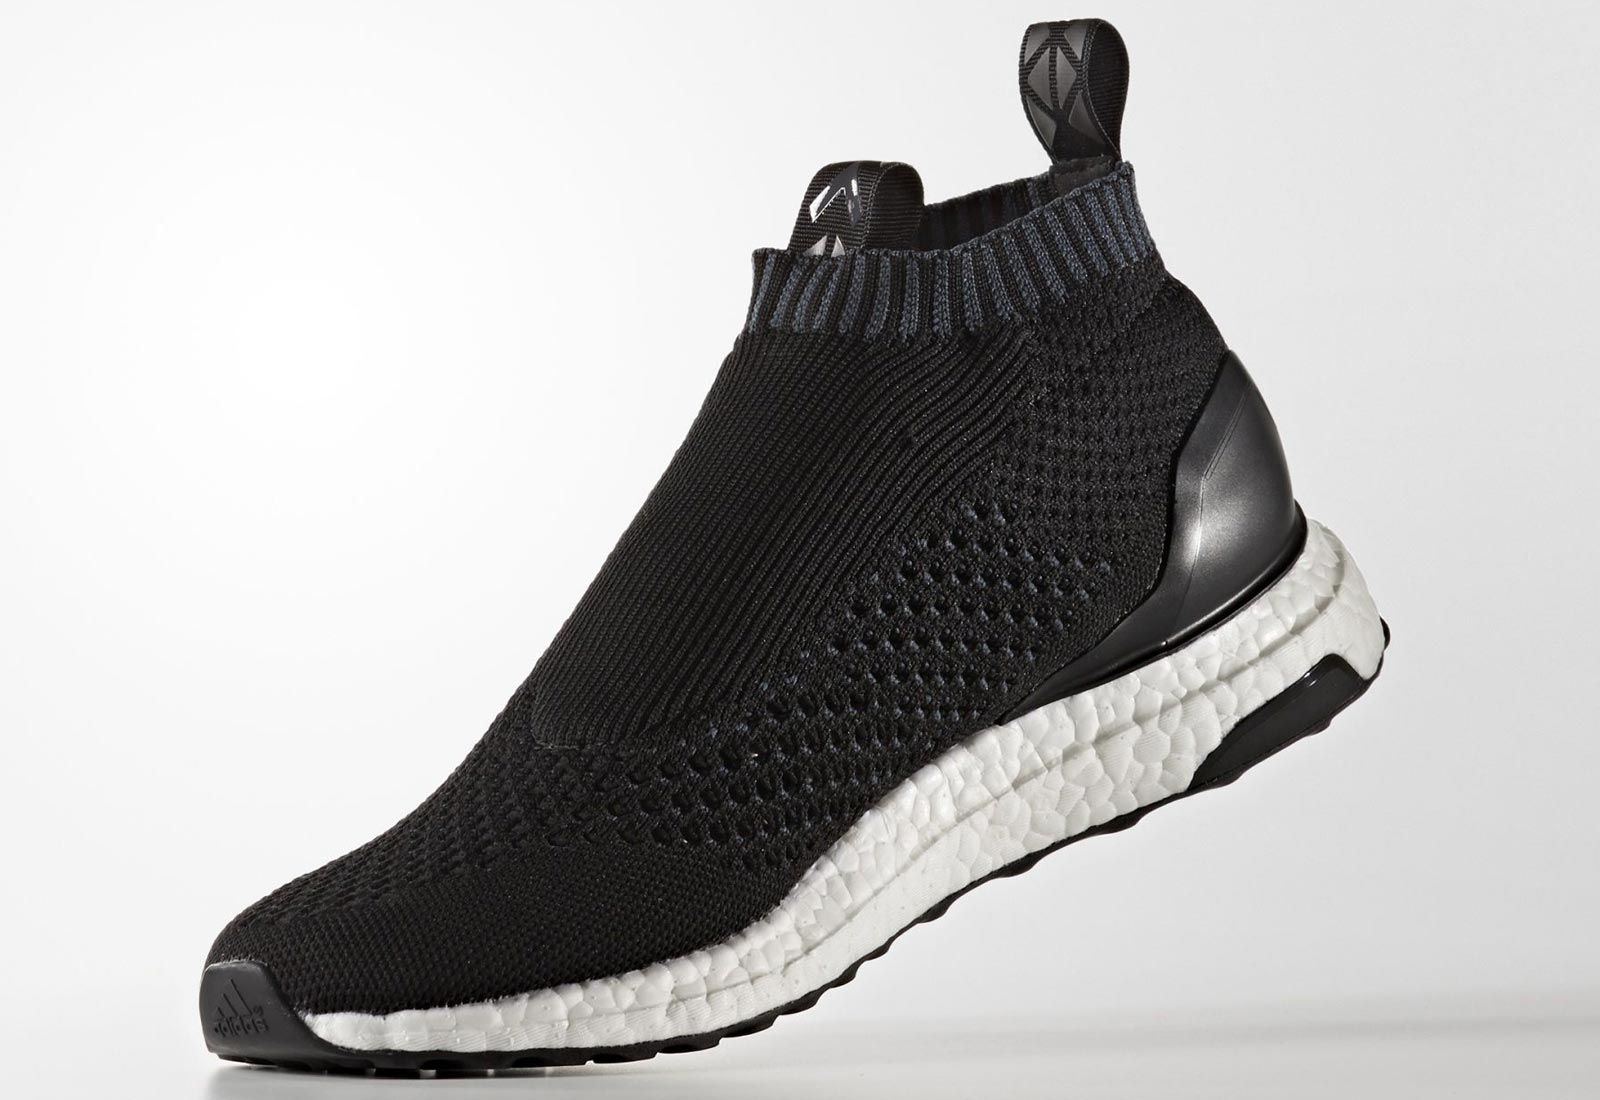 adidas Ace 16 PureControl Ultra Boost Release Date. The adidas Ace  PureControl Ultra Boost is the latest Ultra Boost laceless silhouette from  adidas.